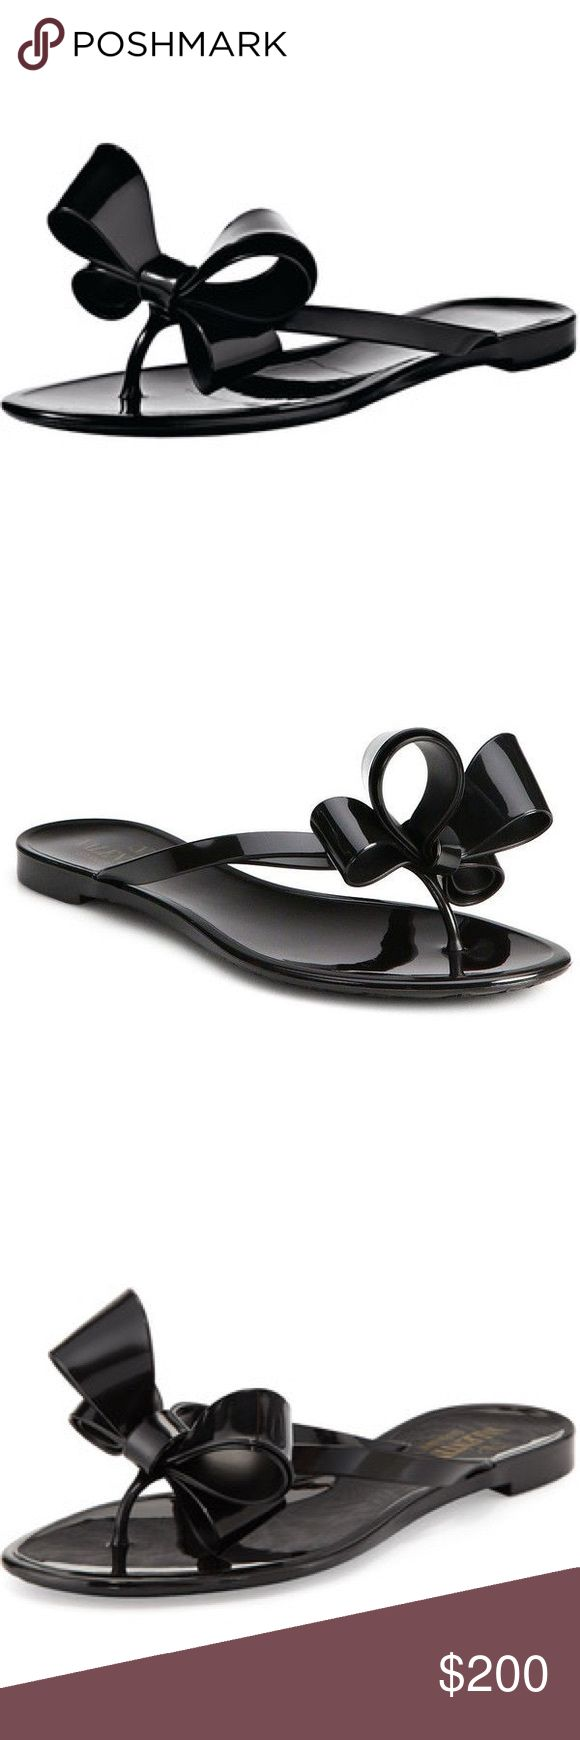 Valentino couture bow jelly flat sandal Valentino couture black jelly sandal size 38. Never worn. Bought size too big and never returned to Saks. Valentino Shoes Sandals